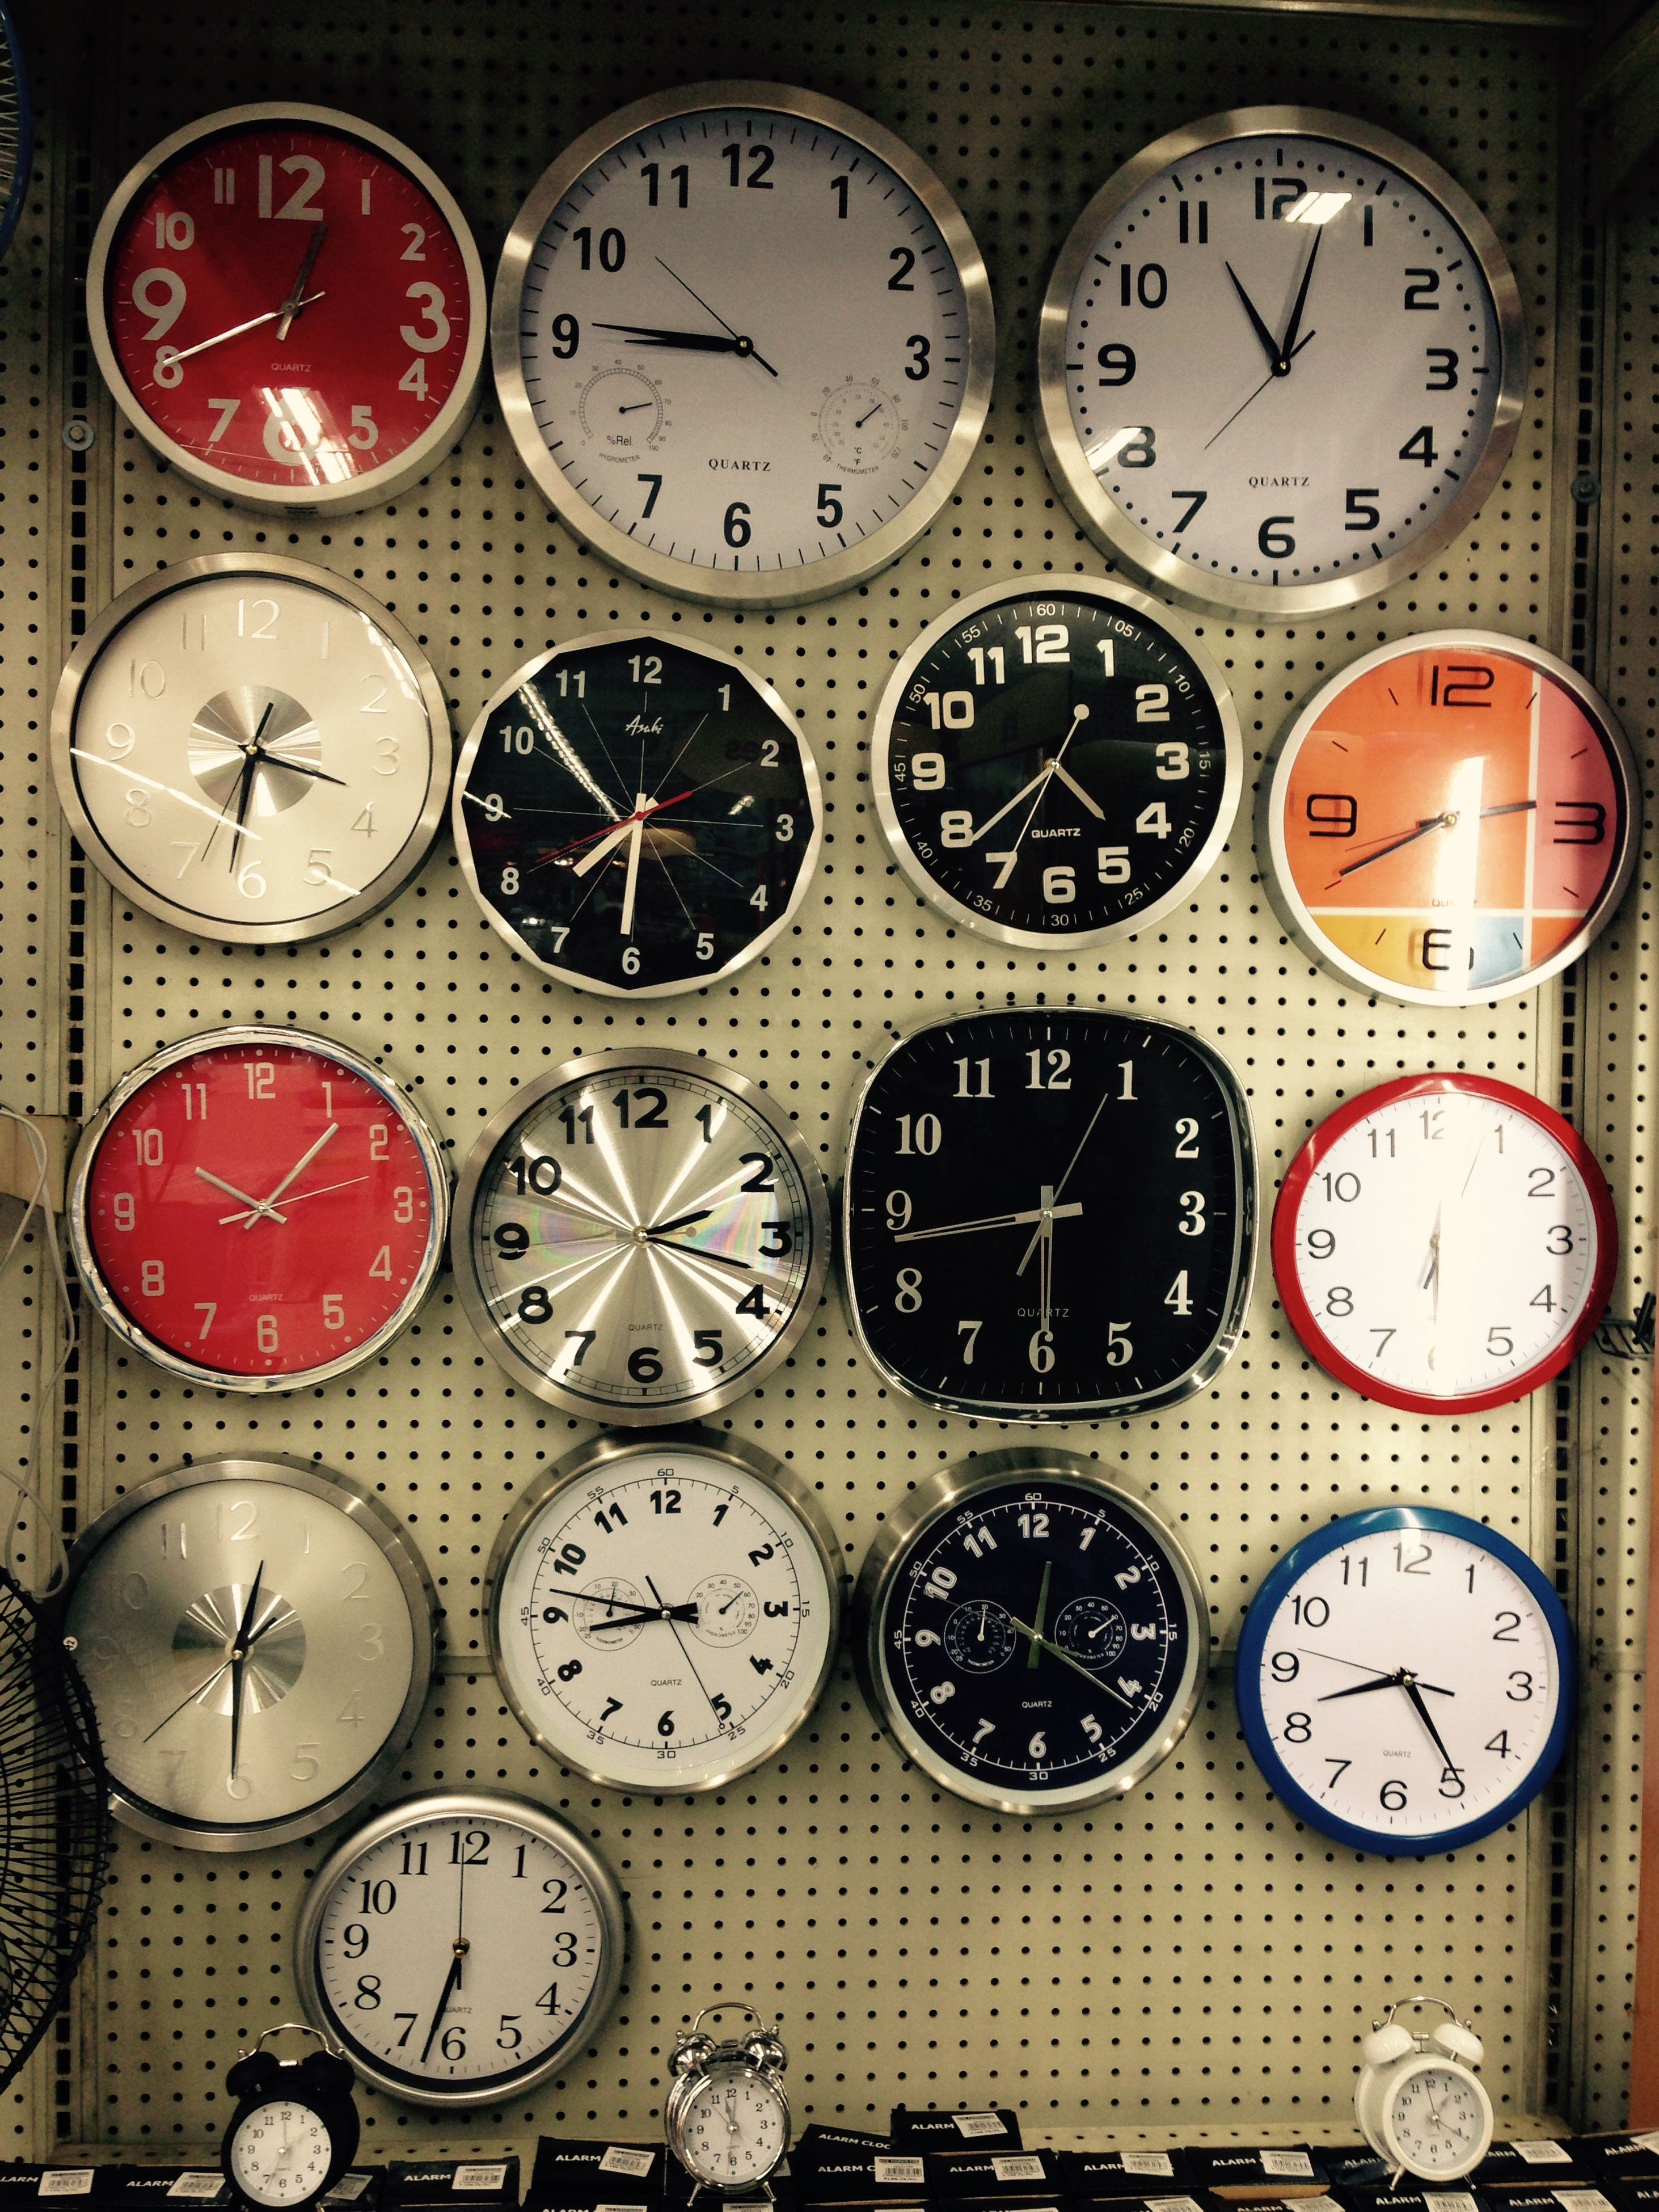 indoors, clock, time, number, circle, old-fashioned, clock face, accuracy, retro styled, antique, close-up, text, wall clock, minute hand, no people, metal, still life, wall - building feature, technology, communication